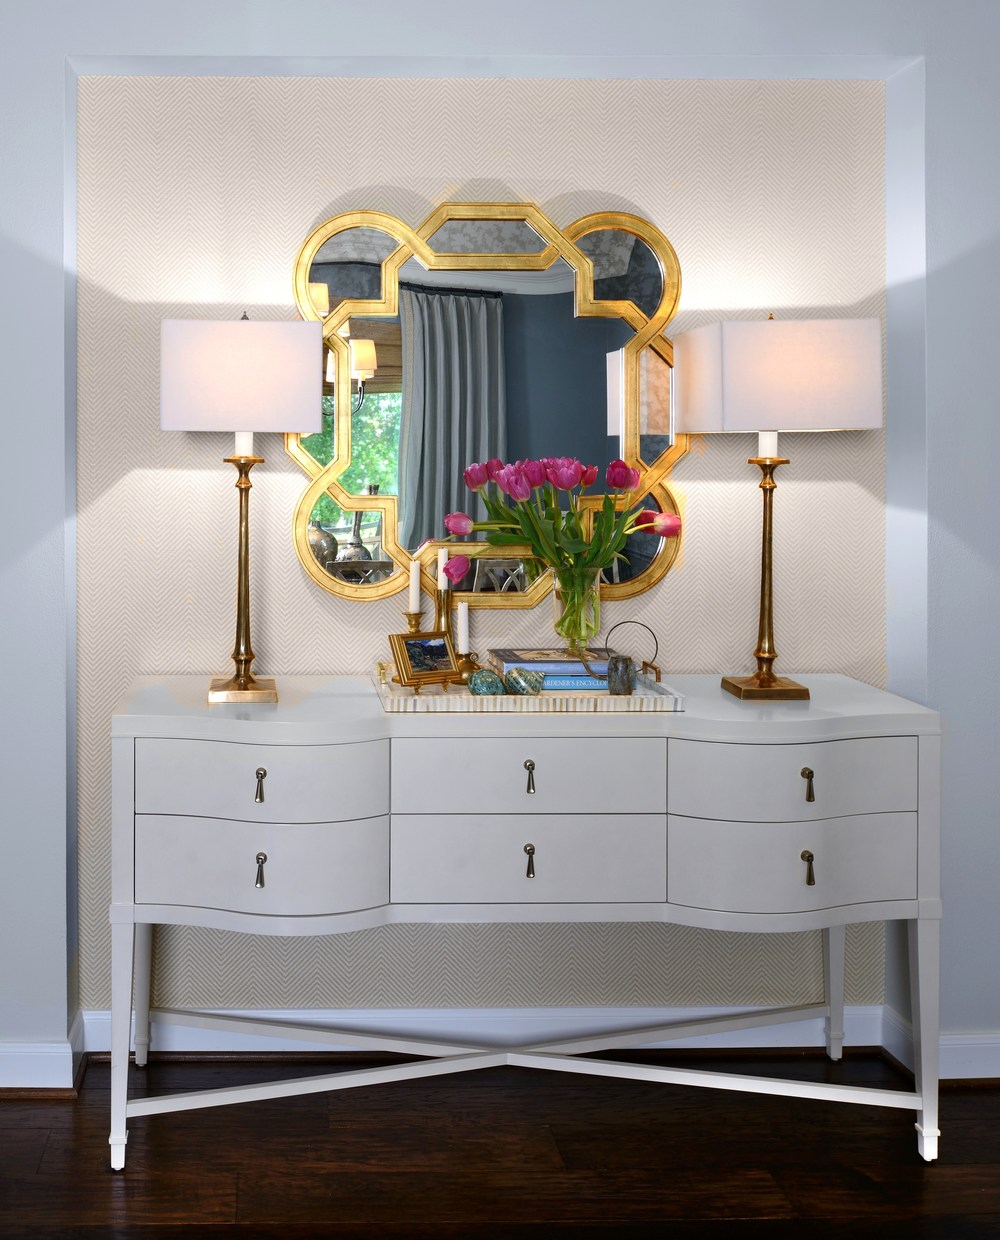 Hallway console with lamps and mirror, Designer: Carla Aston